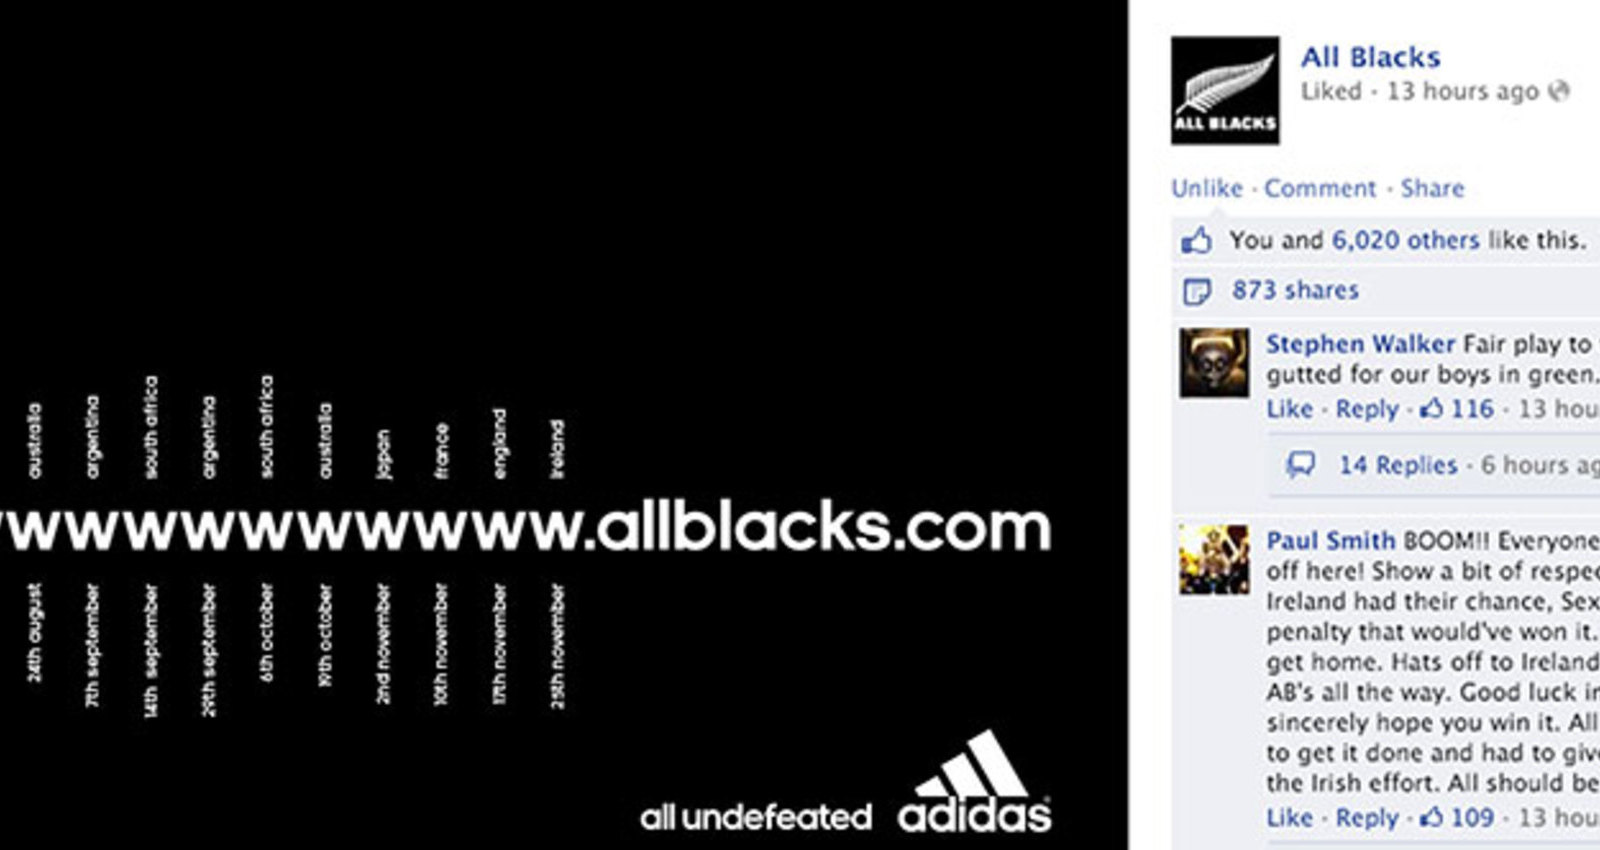 adidas All Blacks all undefeated in 2013